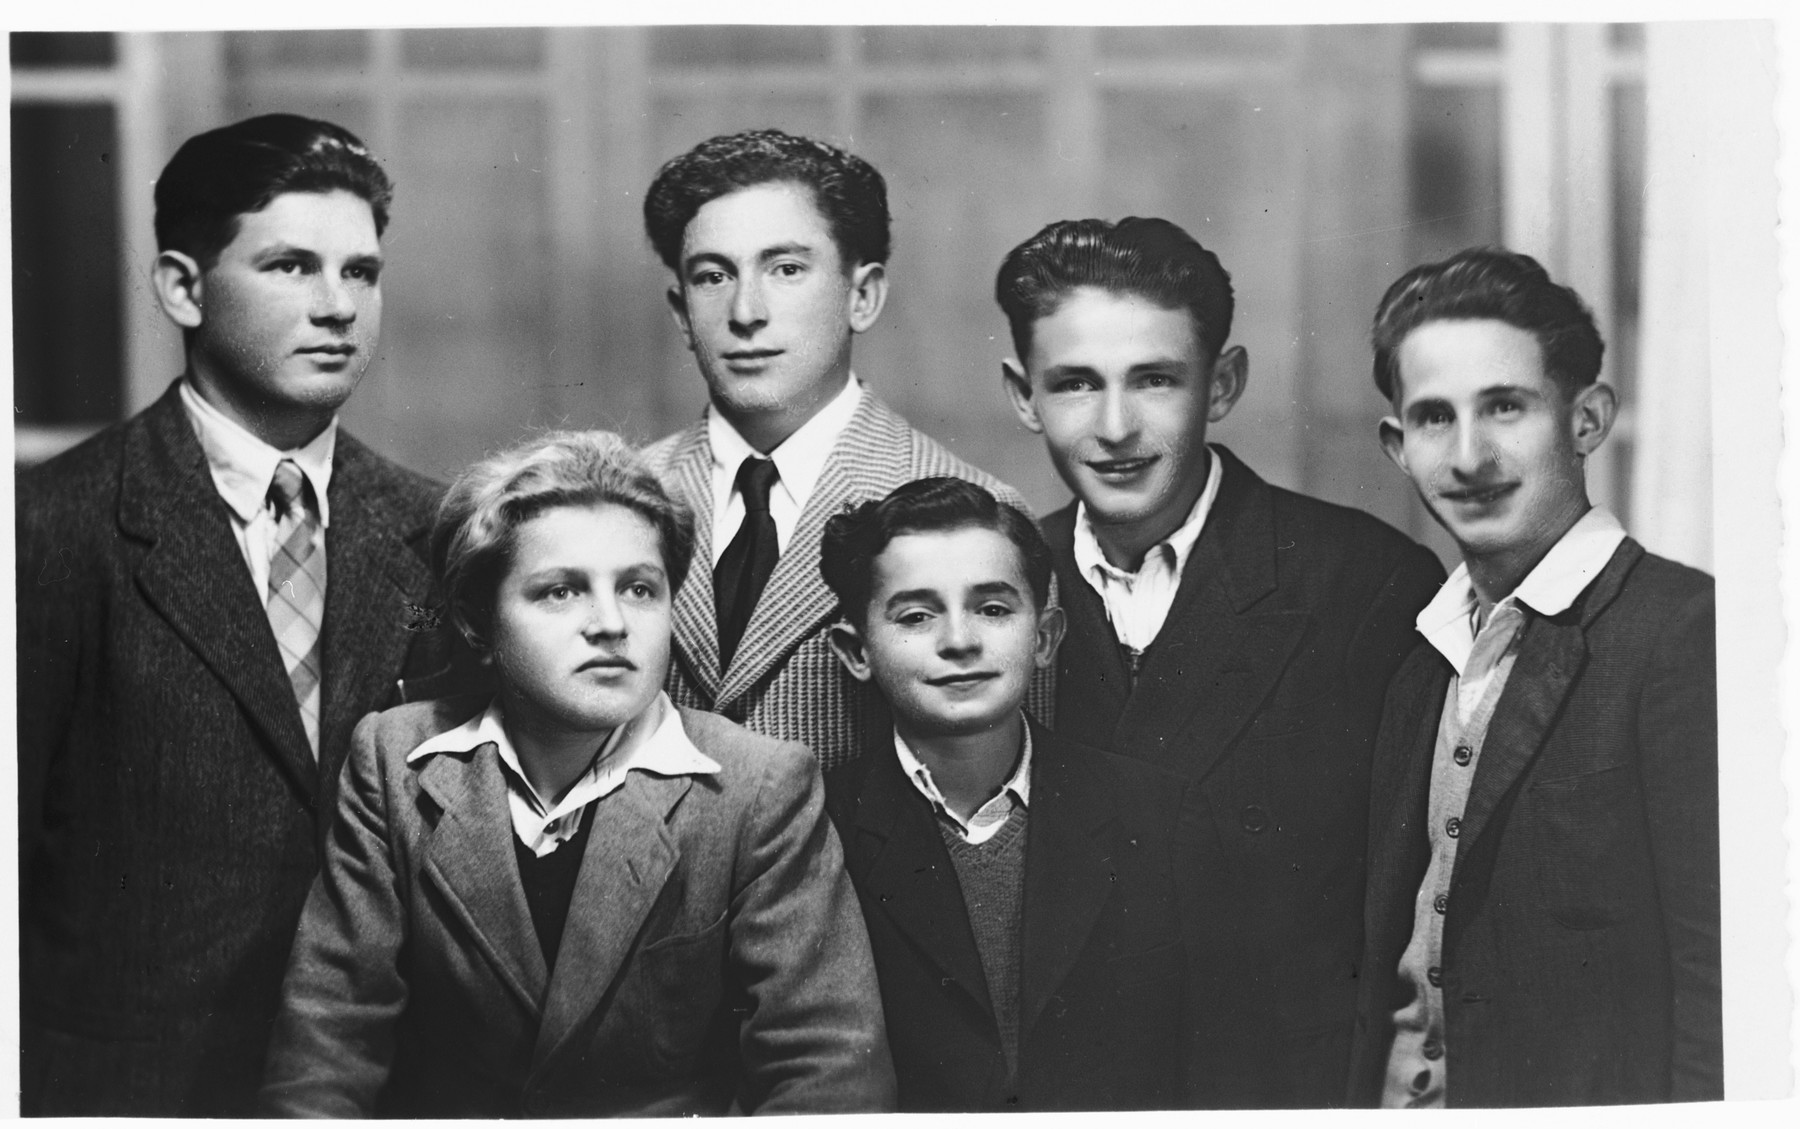 Group portrait of Jewish youth at the Selvino Youth Aliyah children's home.  Dov Zugman is pictured on the far right.   Pictured in the front center is Motel Hostyk.  Standing back on the left is Avramchik and Mendel Rosenkrantz.